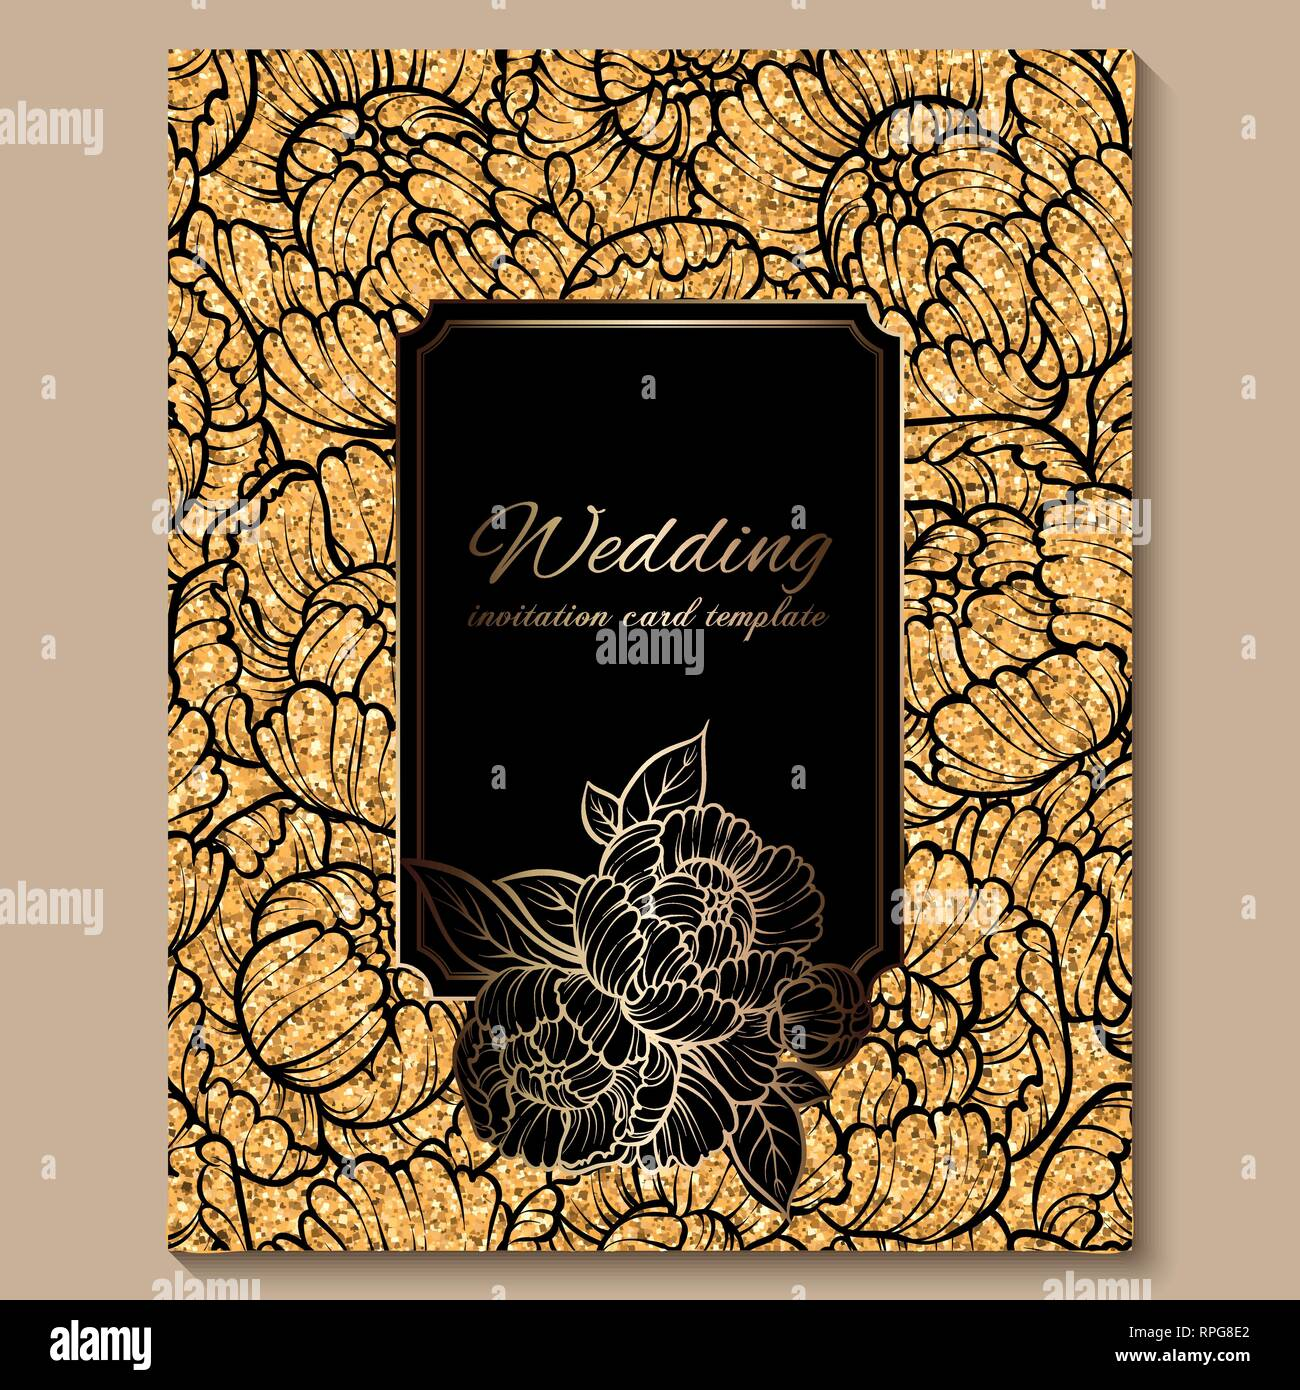 https www alamy com antique royal luxury wedding invitation card golden glitter background with frame and place for text black lacy foliage made of roses or peonies image237615114 html